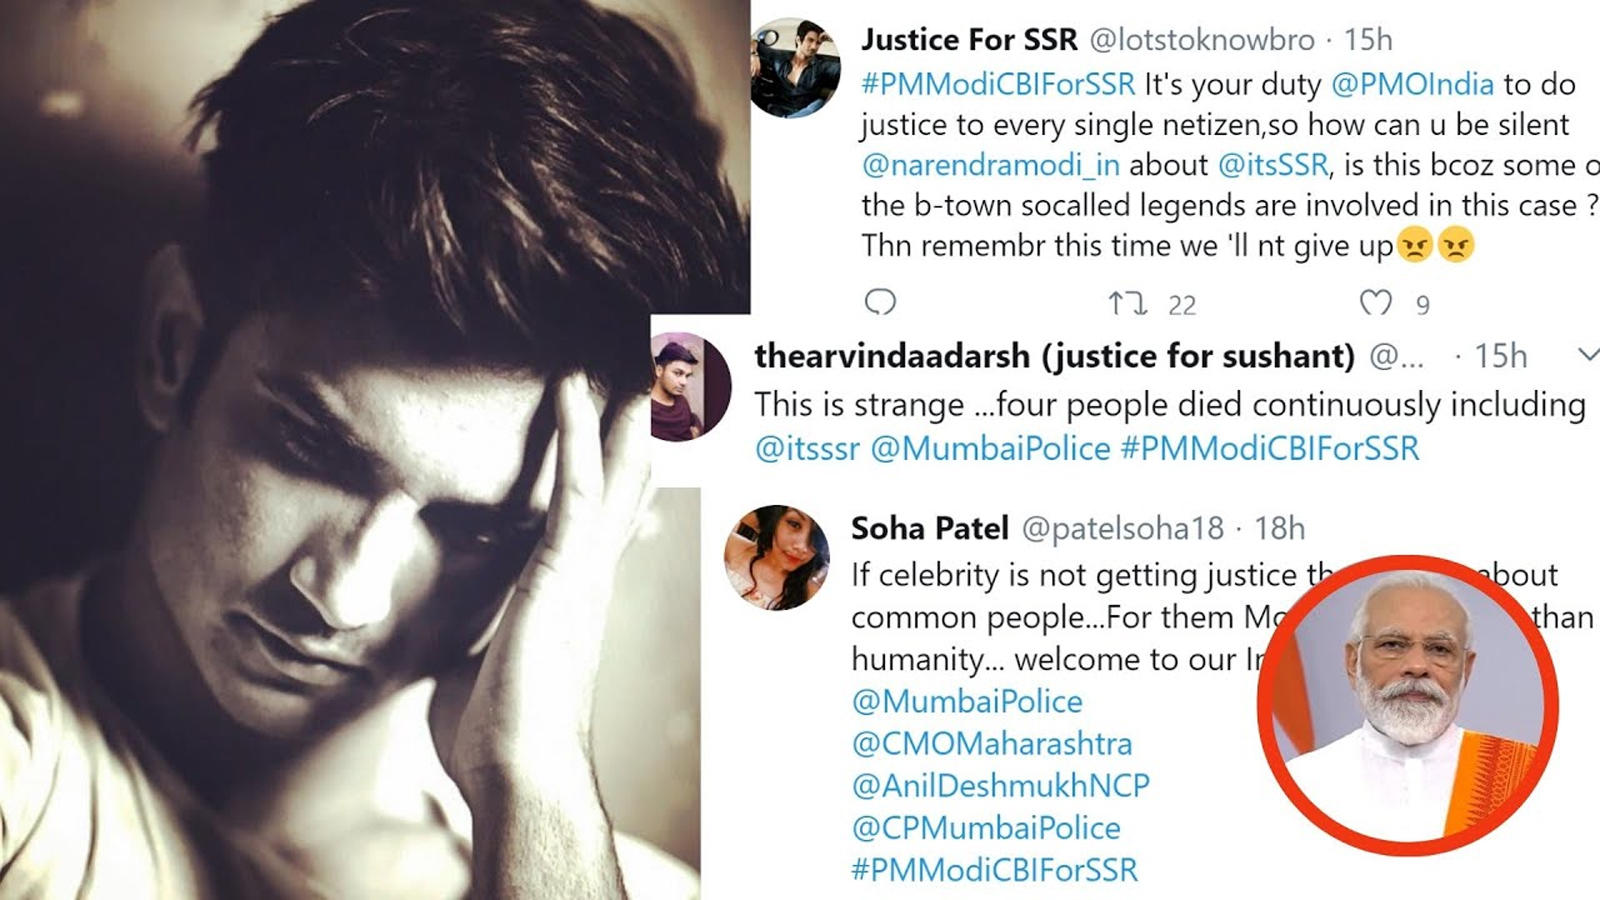 sushant-singh-rajputs-fans-trend-pmmodicbiforssr-urge-pm-narendra-modi-to-begin-cbi-inquiry-into-the-case